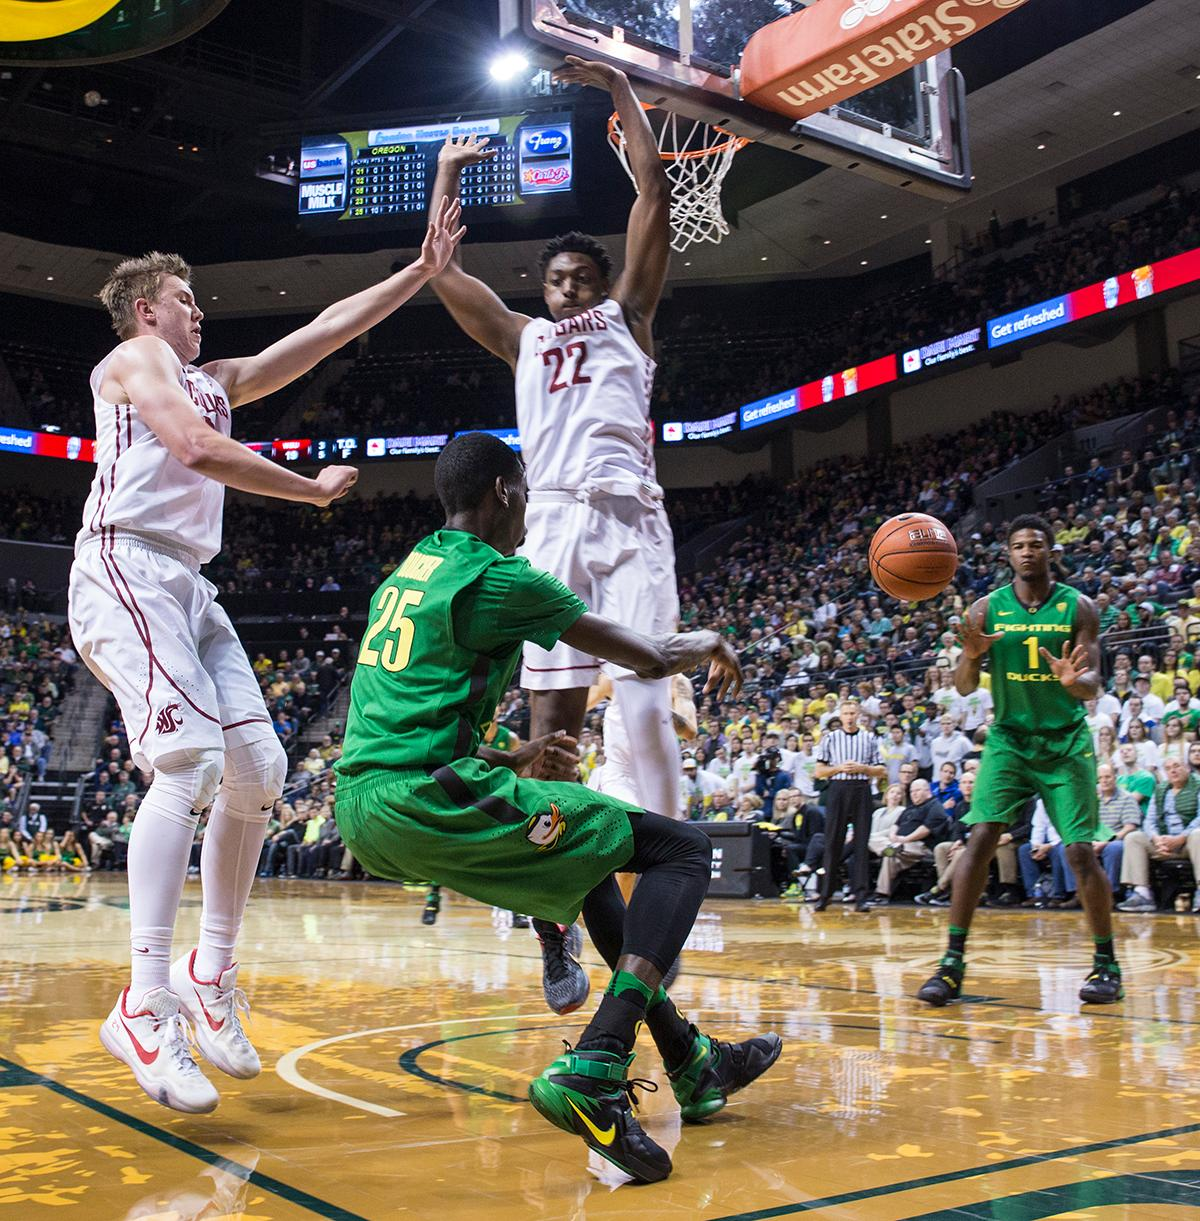 Oregon Ducks' Chris Boucher (#25) passes the ball to Jordan Bell (#1), while Washington State Cougars' Josh Hawkinson (#24) and Robert Franks (#22) defend against them. The Ducks beat the Cougars 76-62. Kianna Cabuco, Oregon News Lab